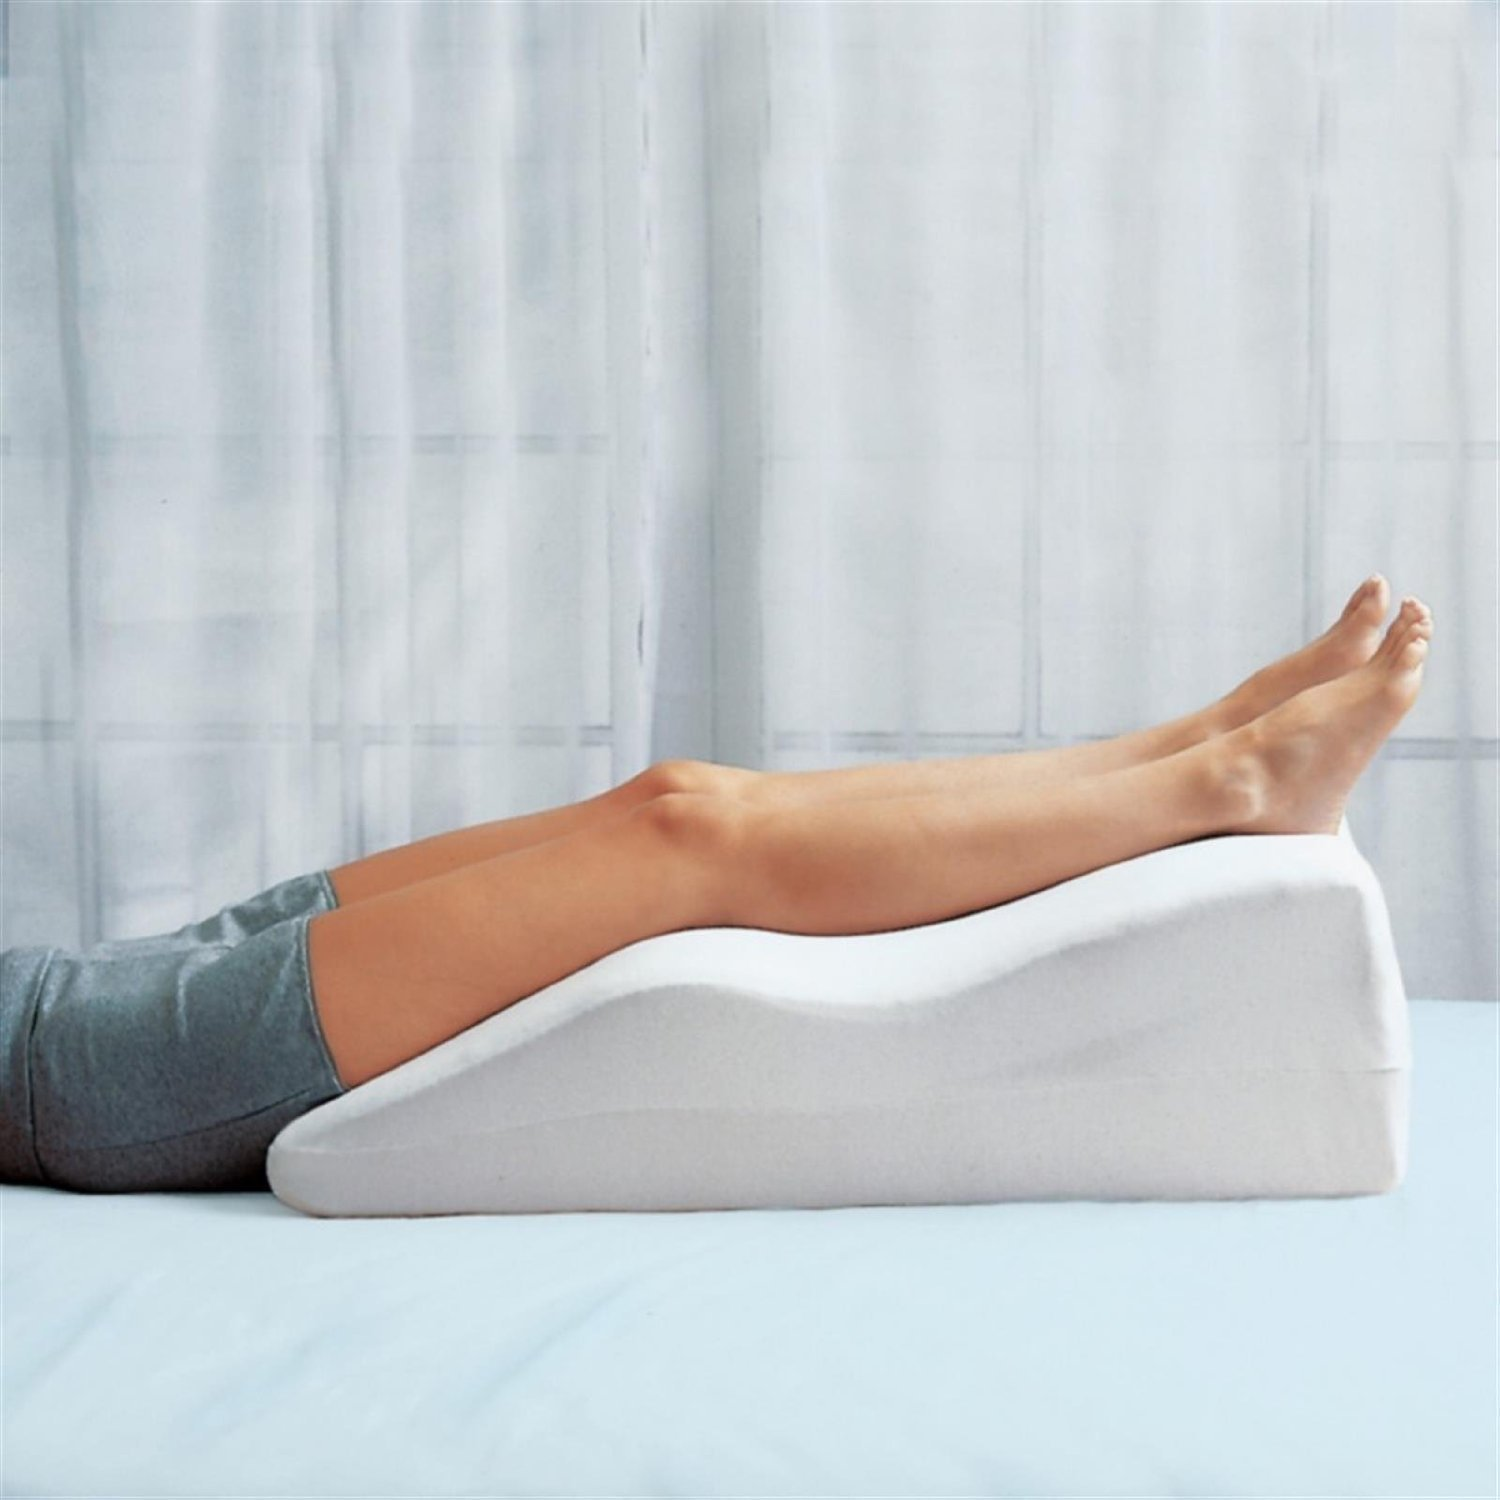 Pillows To Prop You Up In Bed Leg Elevation Pillows